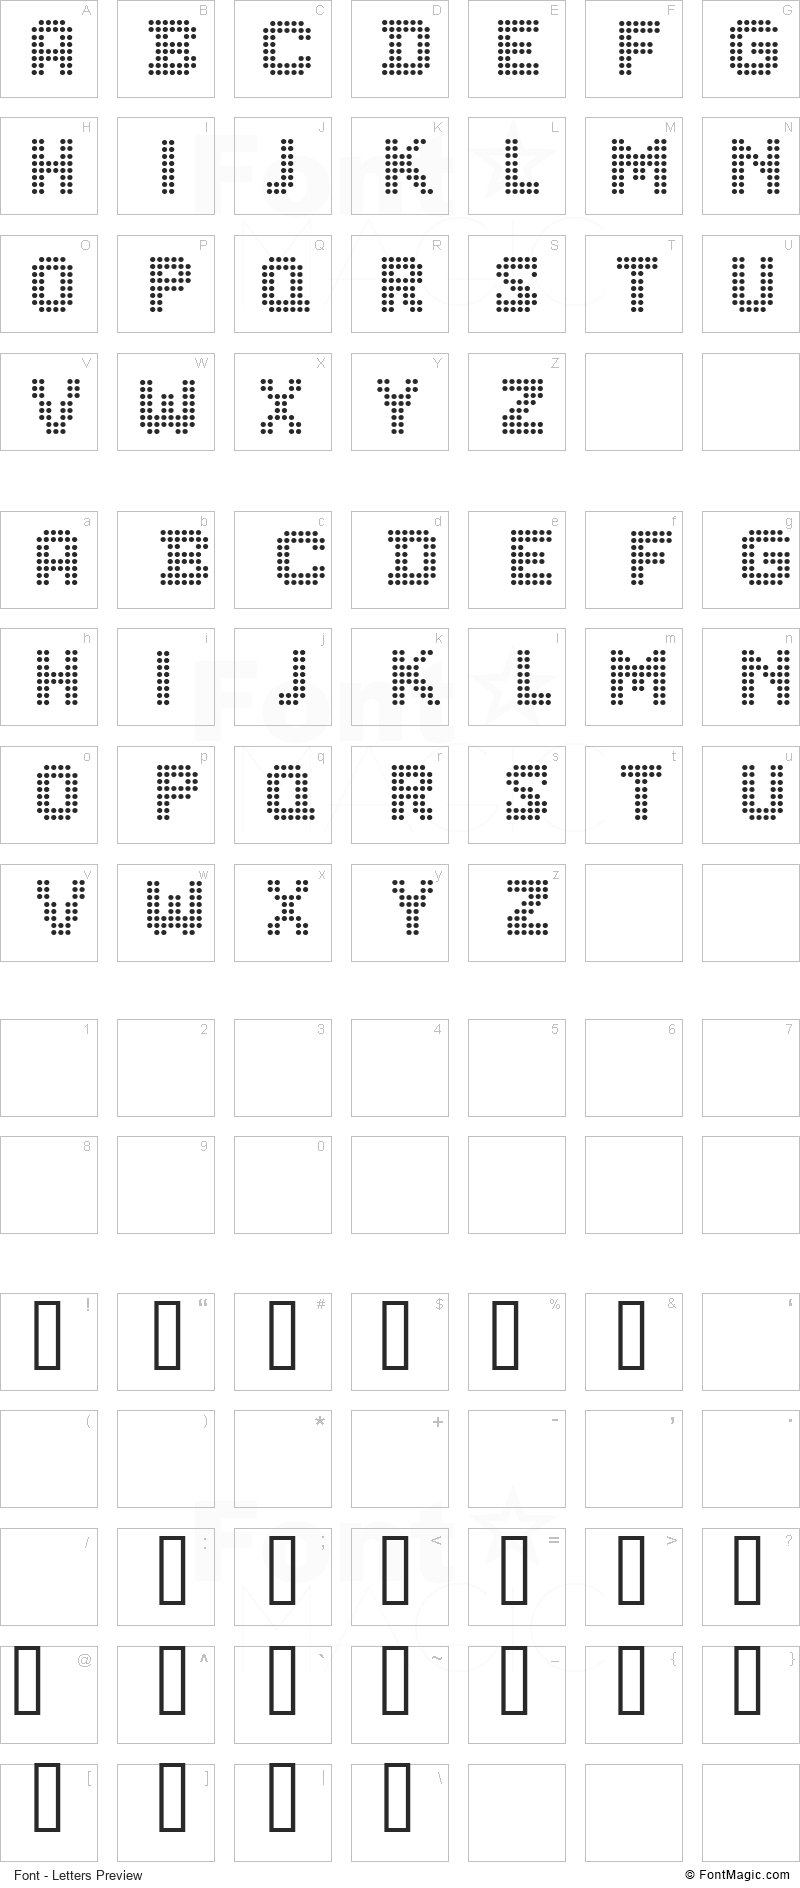 CF Dots 521 Font - All Latters Preview Chart